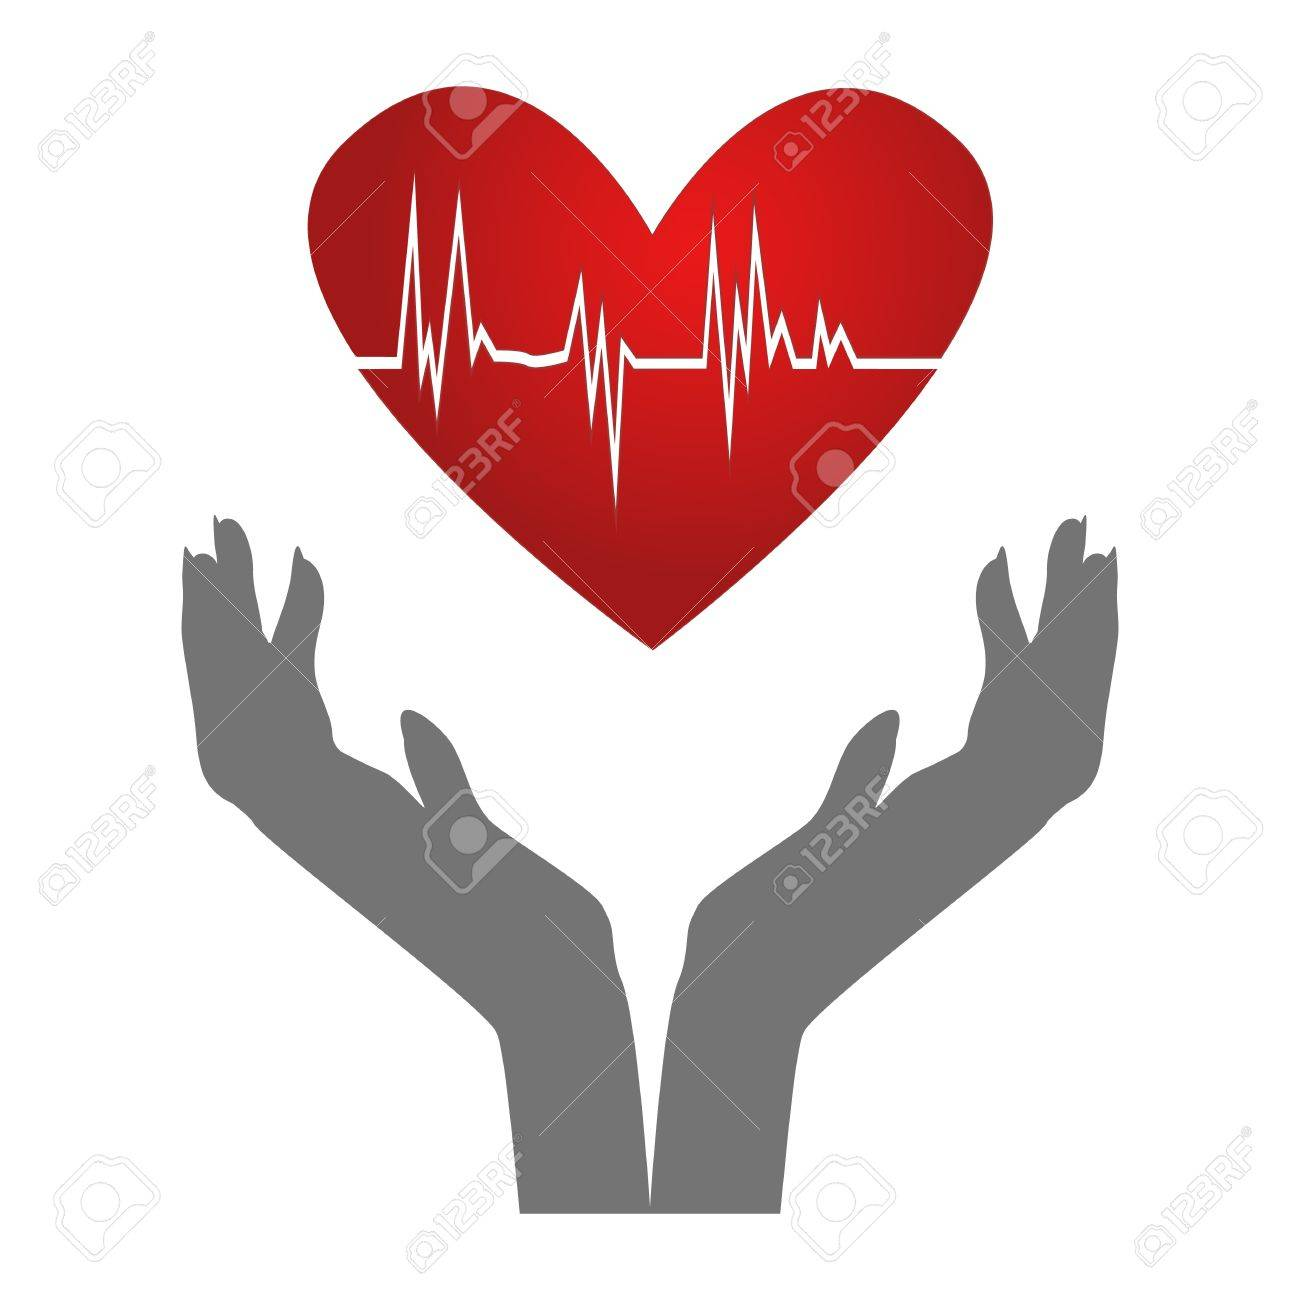 Heartbeat/Silhouette of hands holding heart with ecg inside isolated on white Stock Photo - 16784680